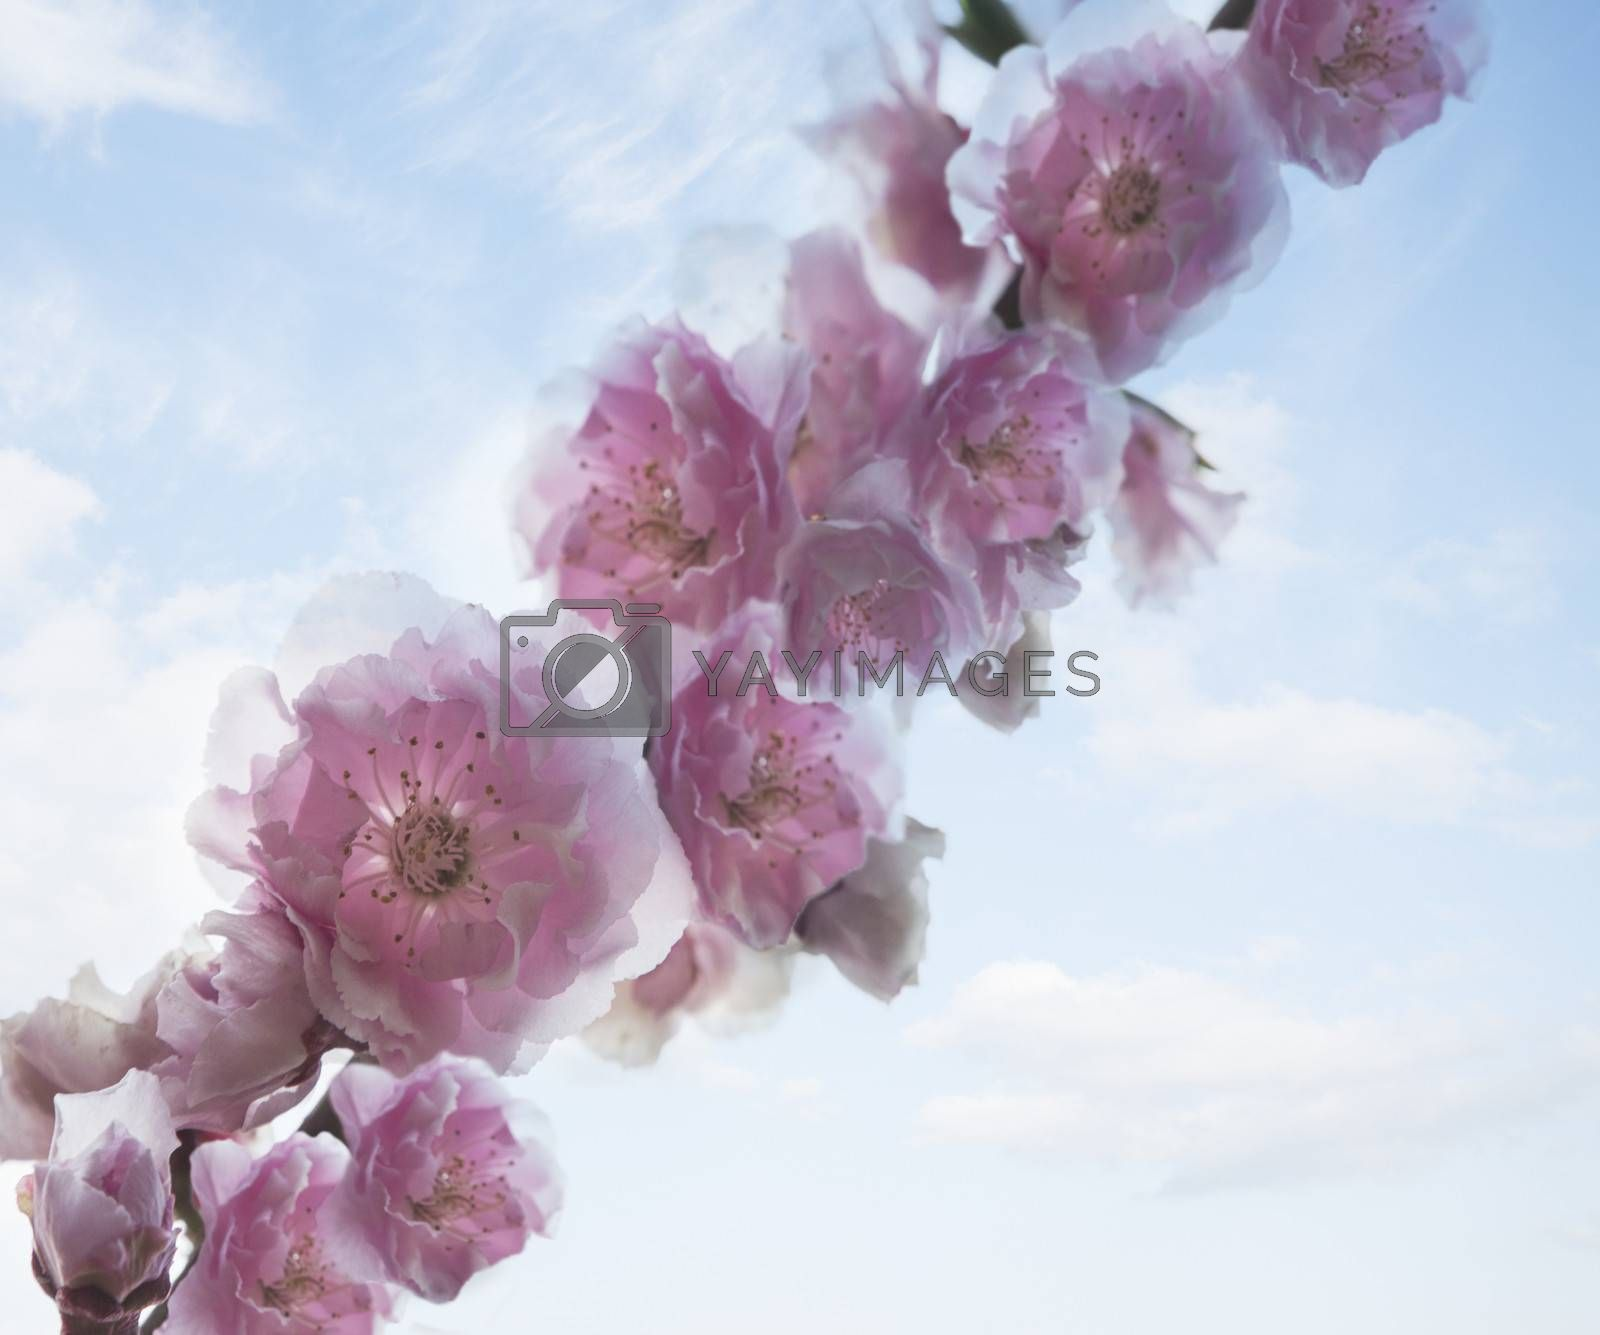 Close-up of pink cherry blossoms.